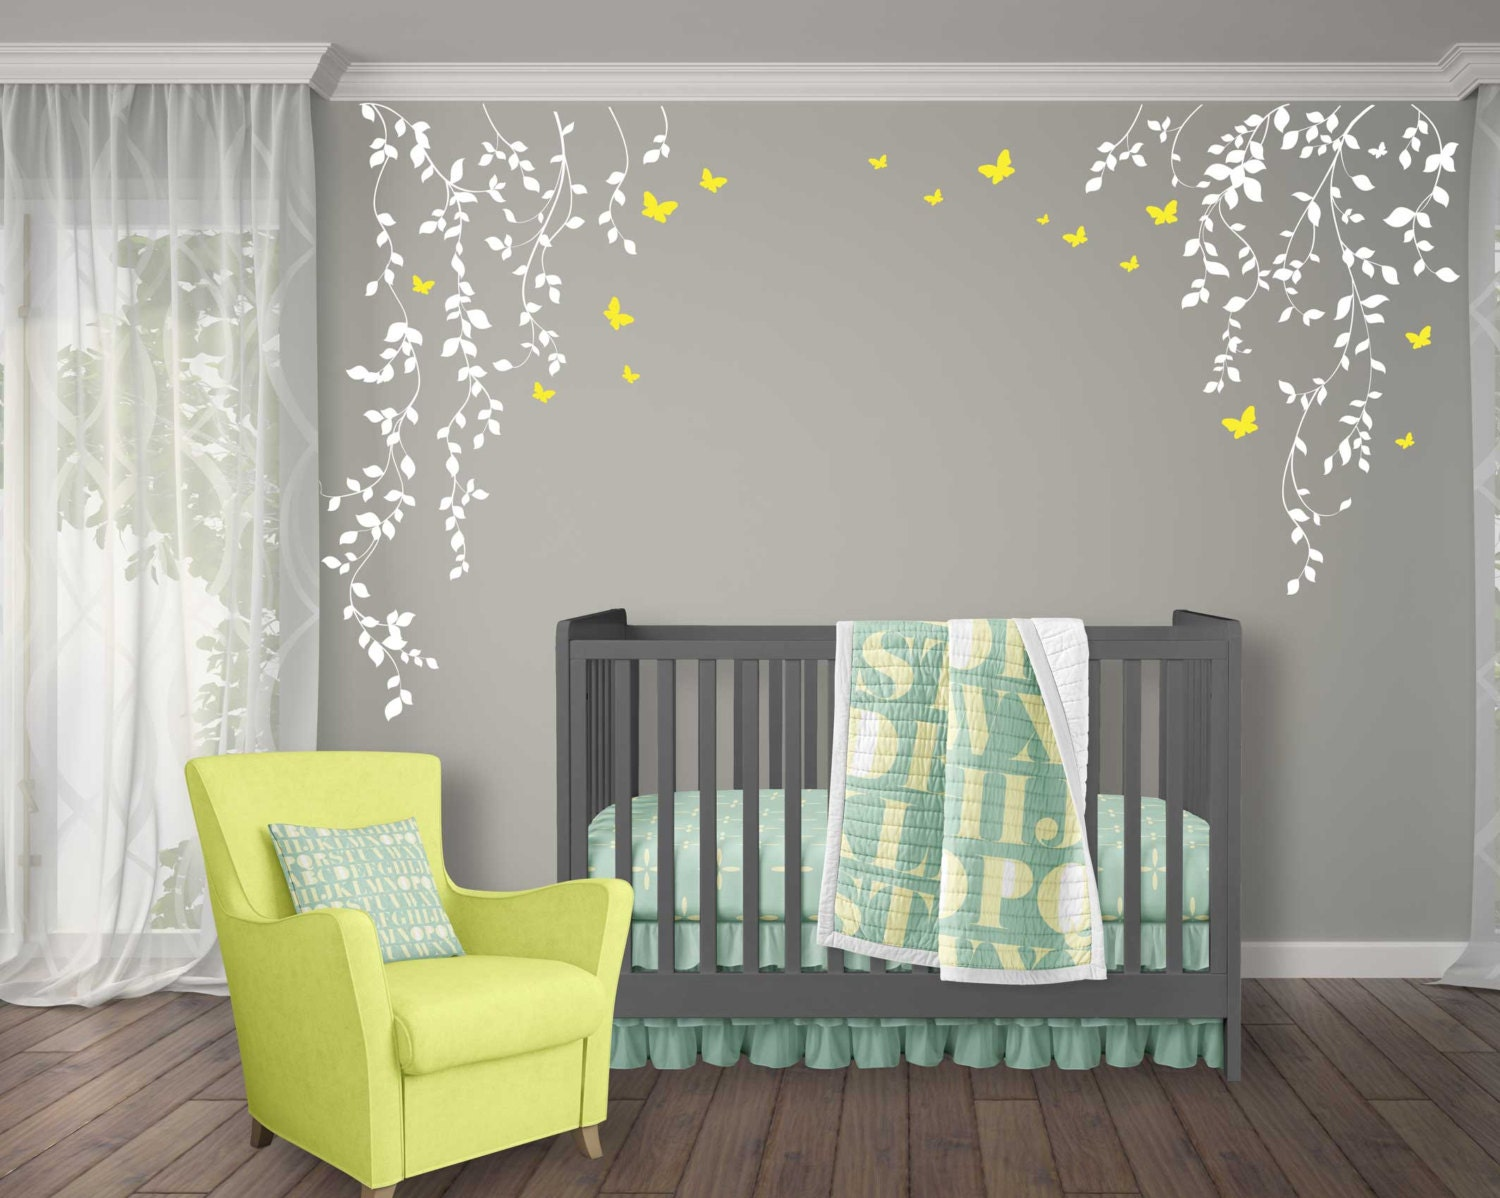 Nursery Wall Decor Vine Wall Decal For Baby Girl Nursery Décor Wall Vines